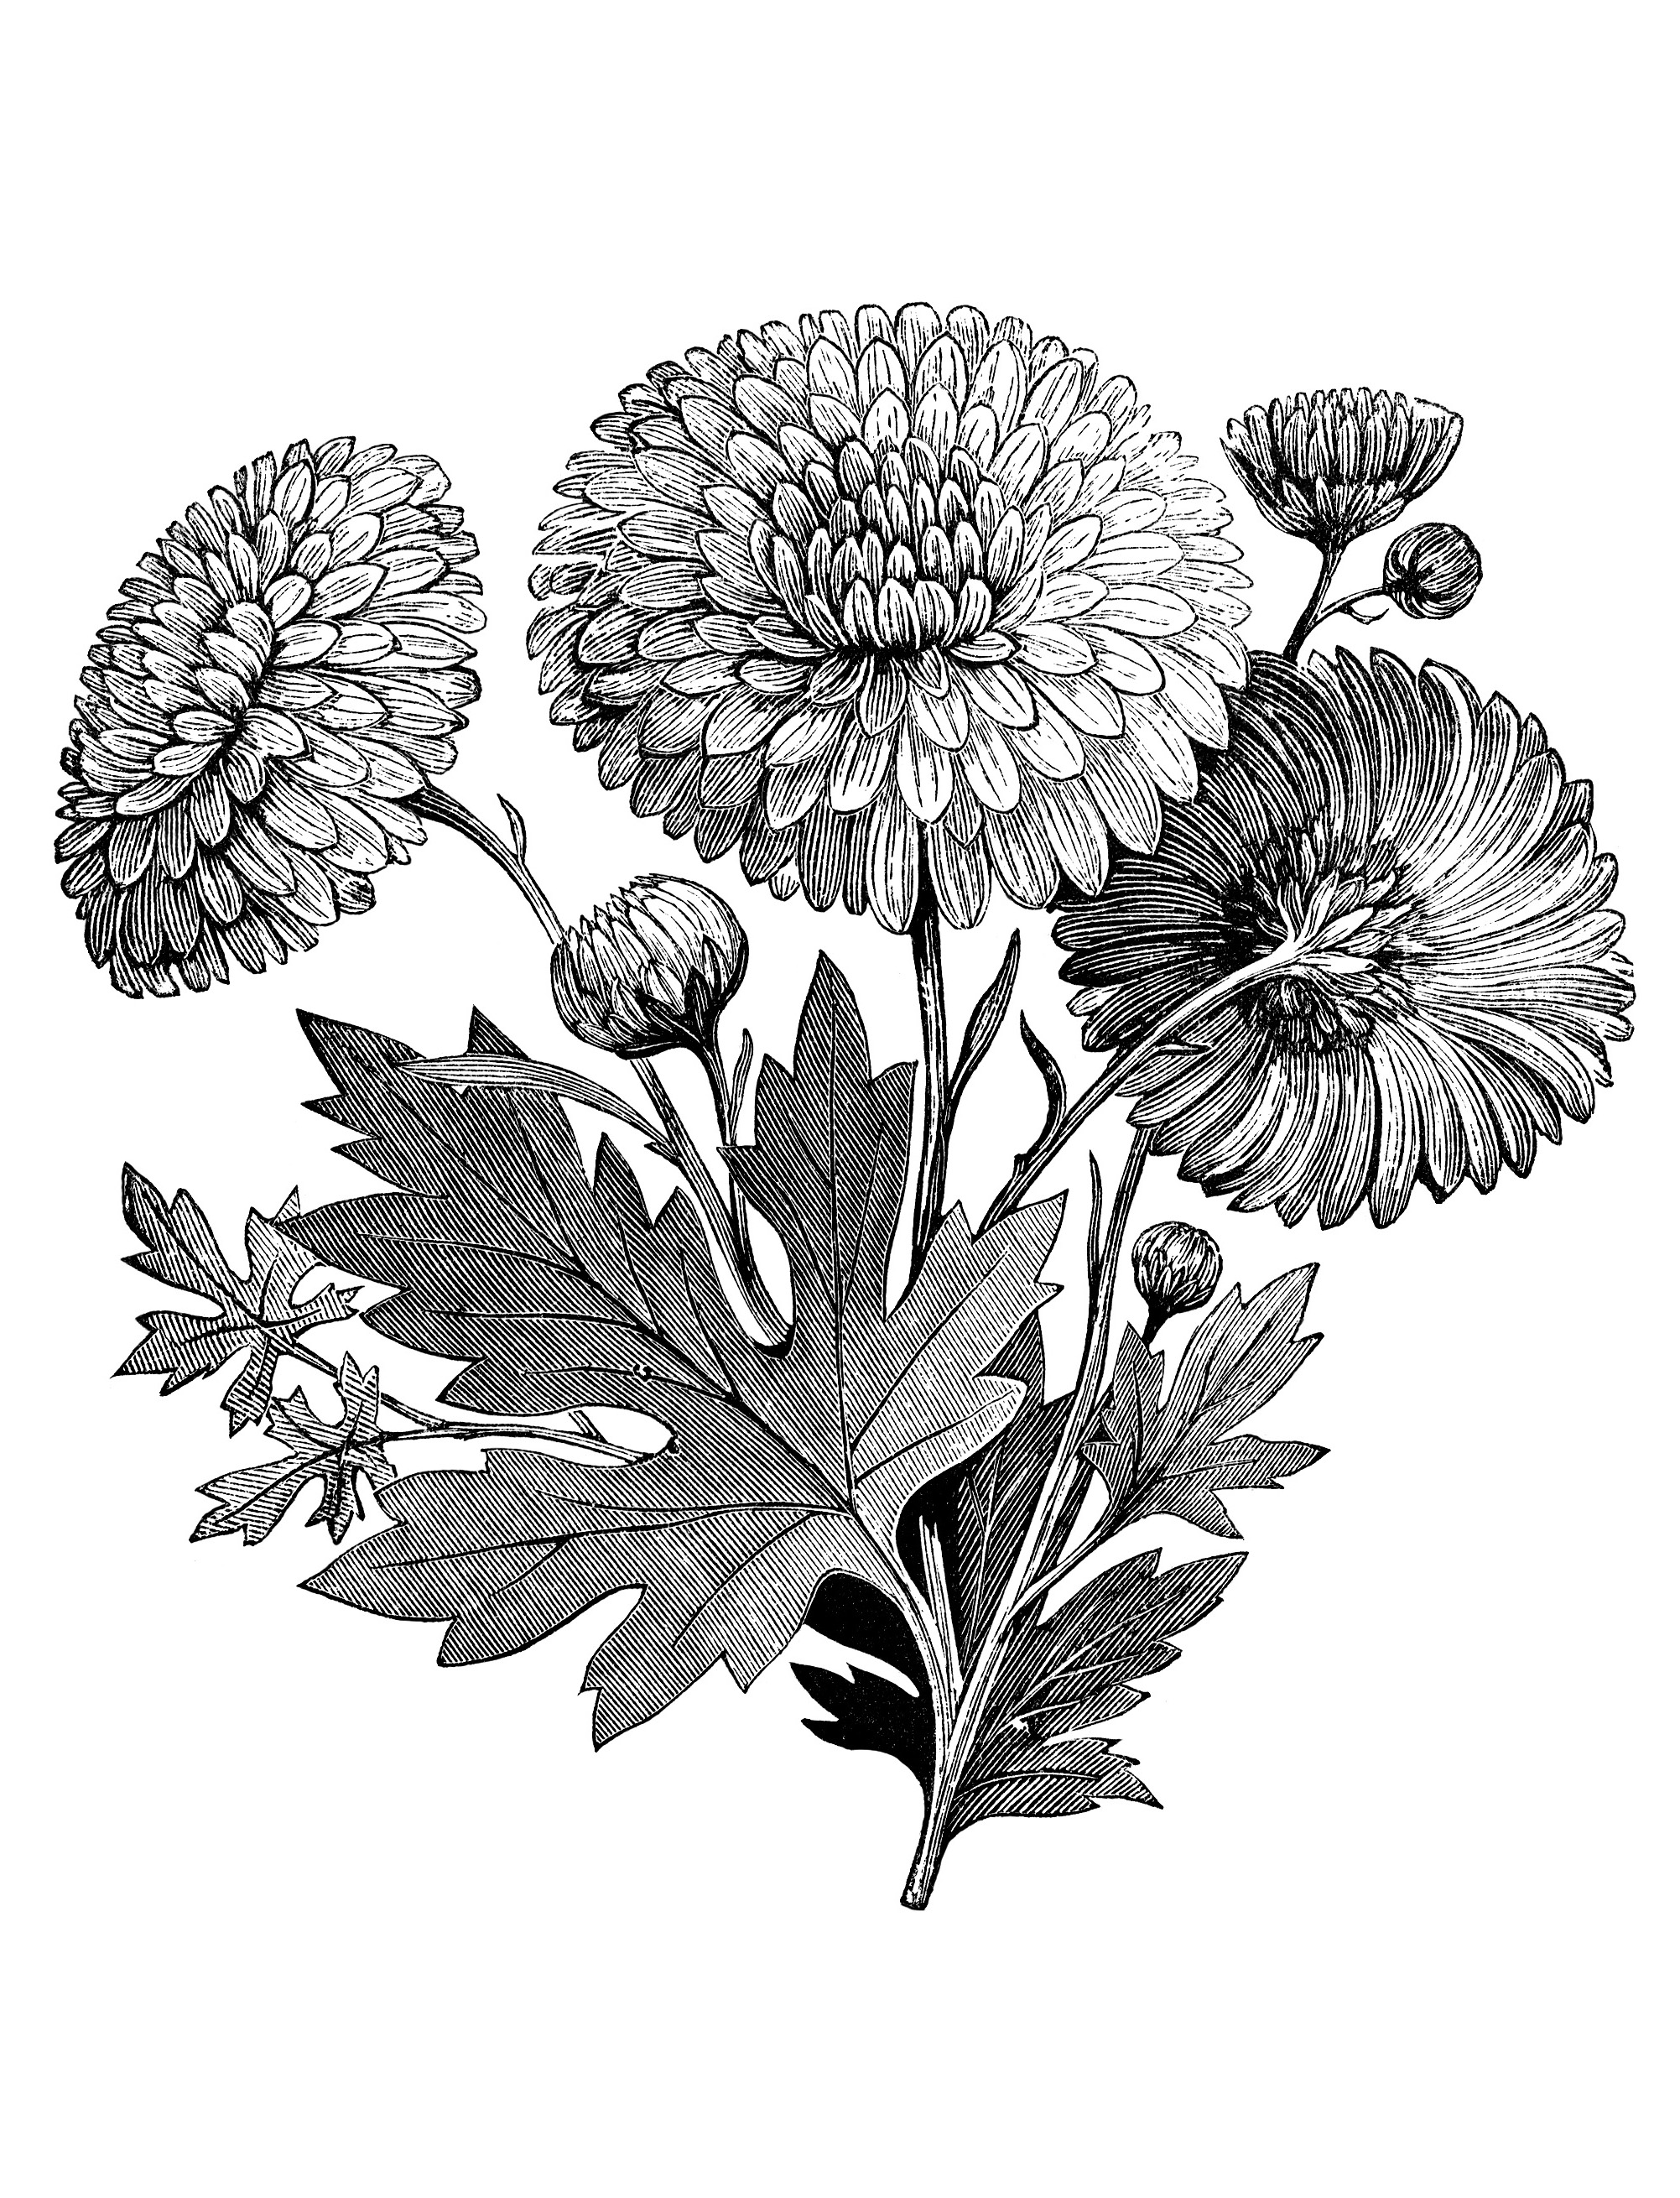 Vintage flower garden clip art black and white - Flowers ...